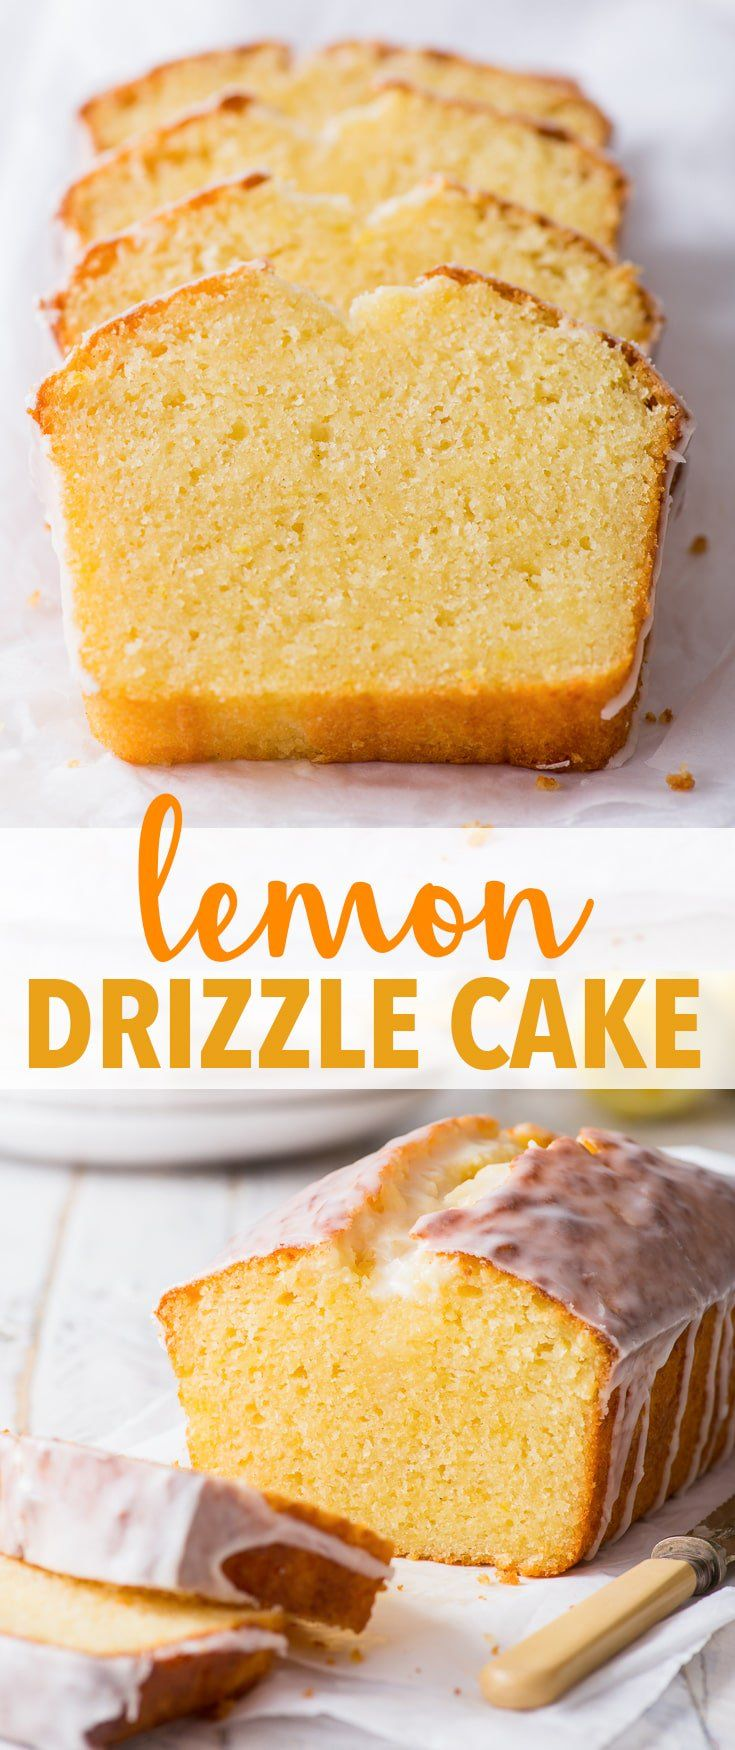 The Best Gluten Free Lemon Drizzle Cake - The Loopy Whisk